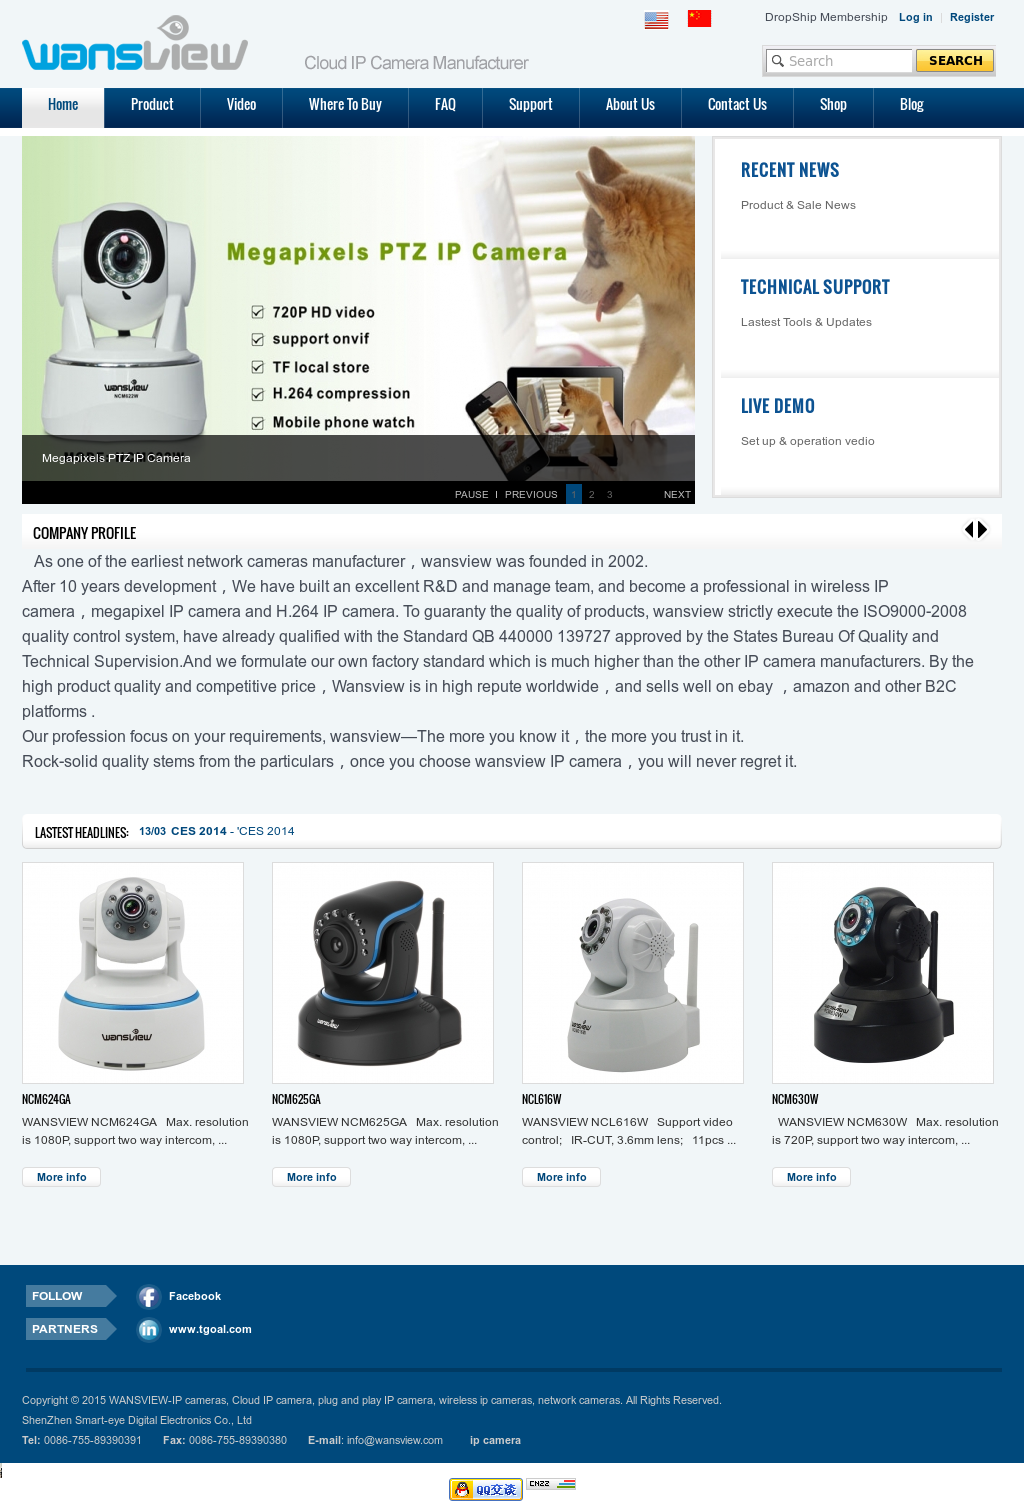 Wansview Ip Camera Competitors, Revenue and Employees - Owler